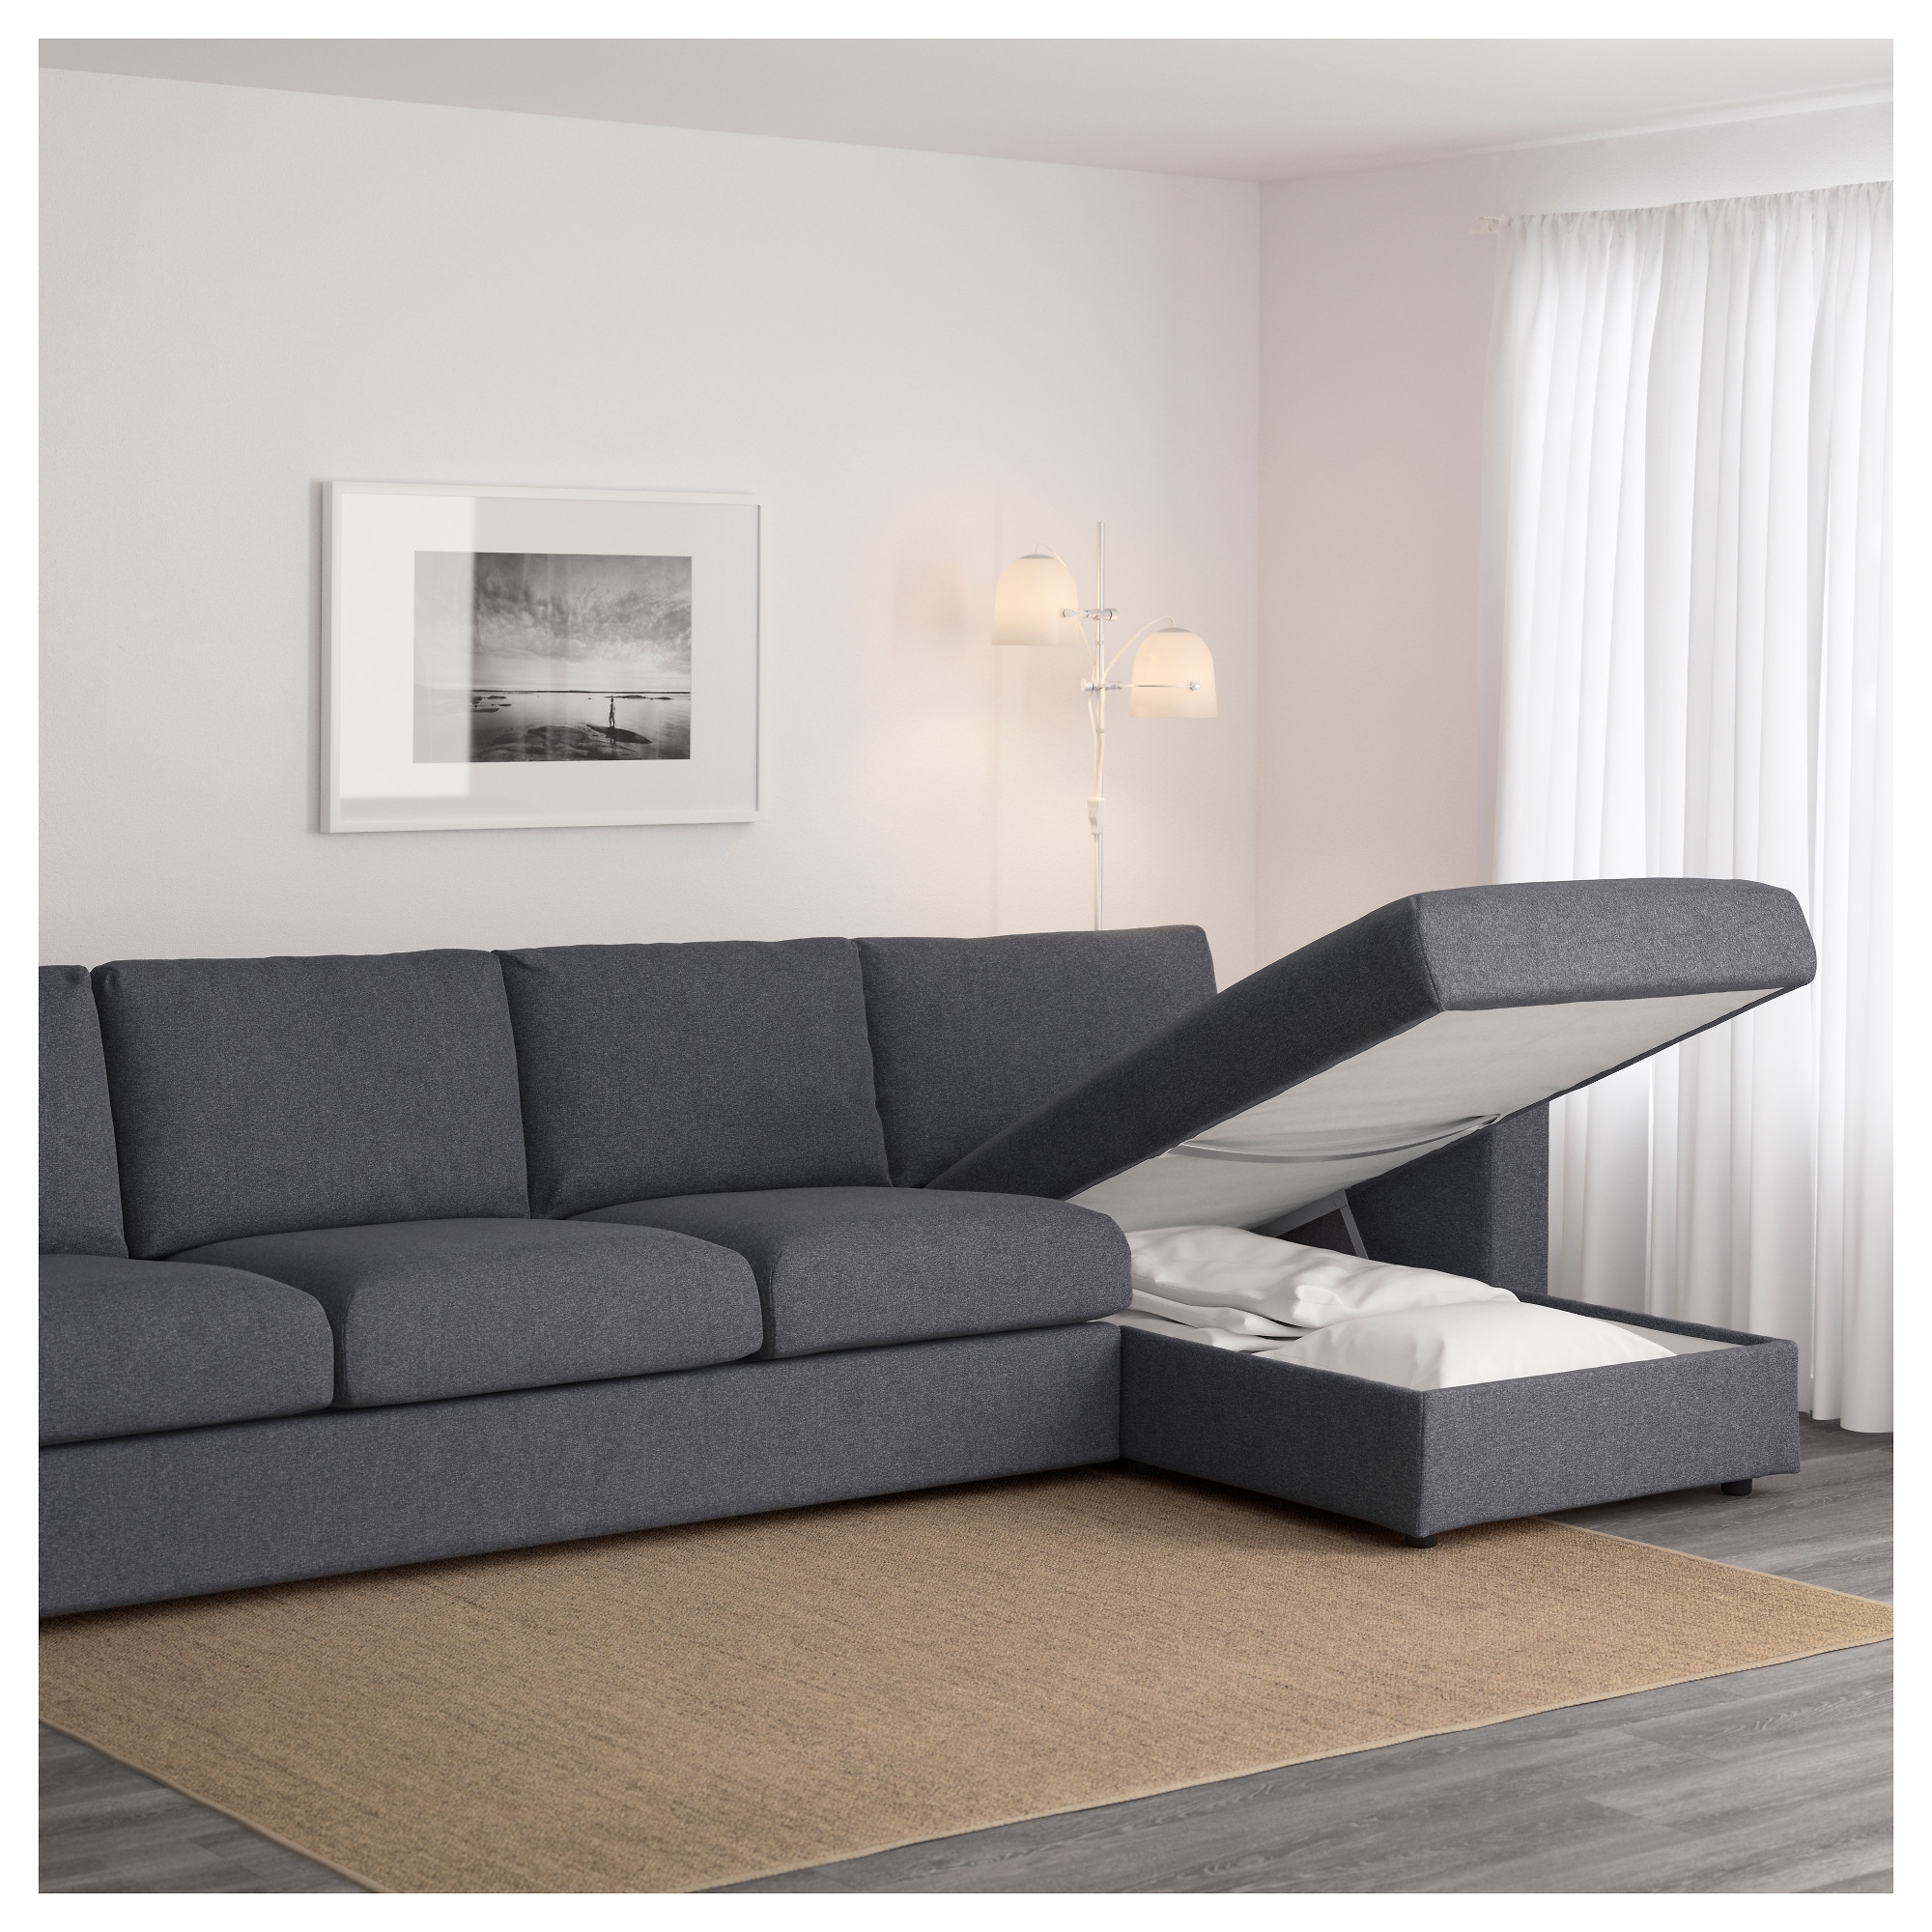 Vimle 4 Seat Sofa With Chaise Longue/gunnared Medium Grey – Ikea Intended For Latest 4 Seat Sofas (View 18 of 20)